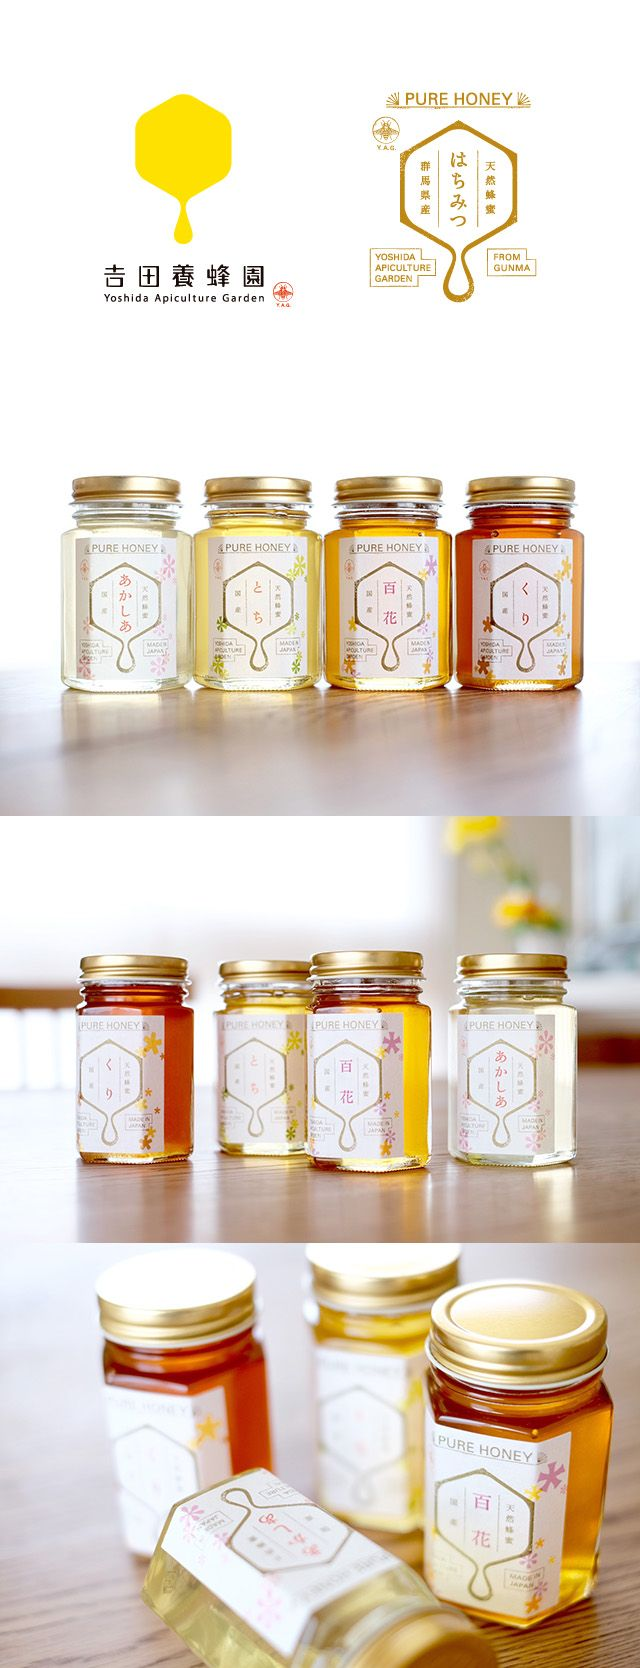 #honey #packaging and #labeling